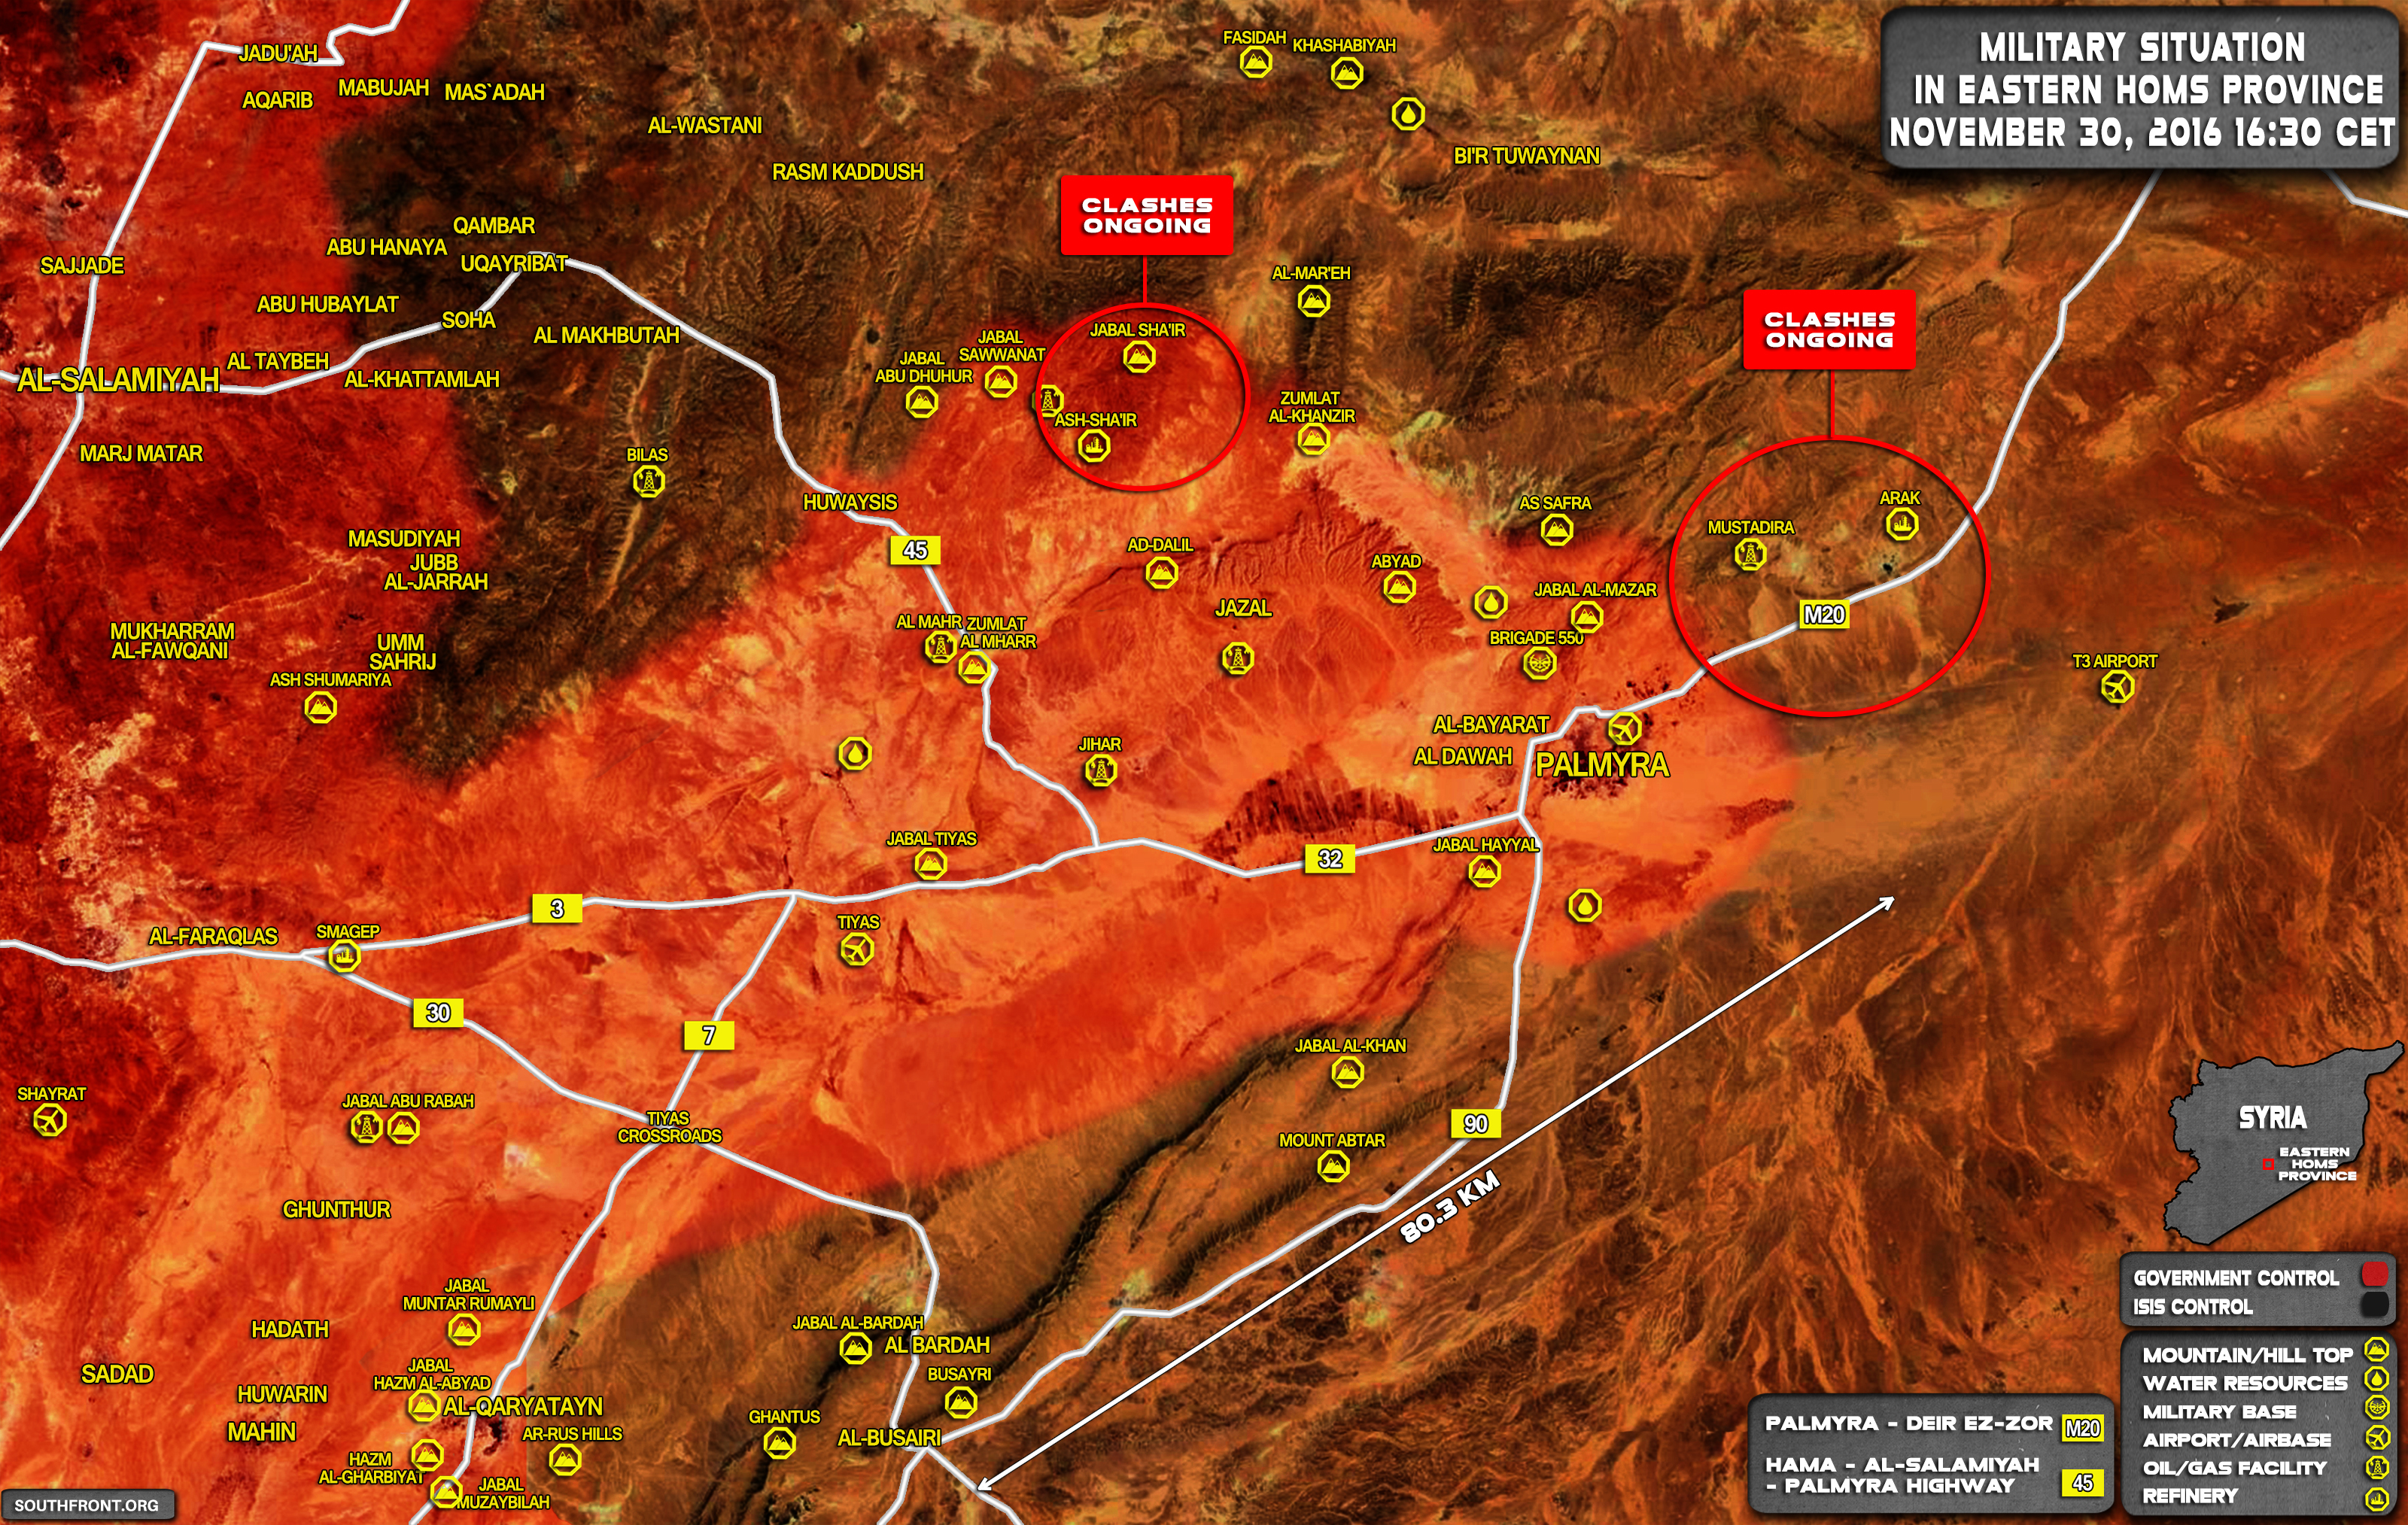 Syrian Army Clashing with ISIS in Eastern Part of Homs Province